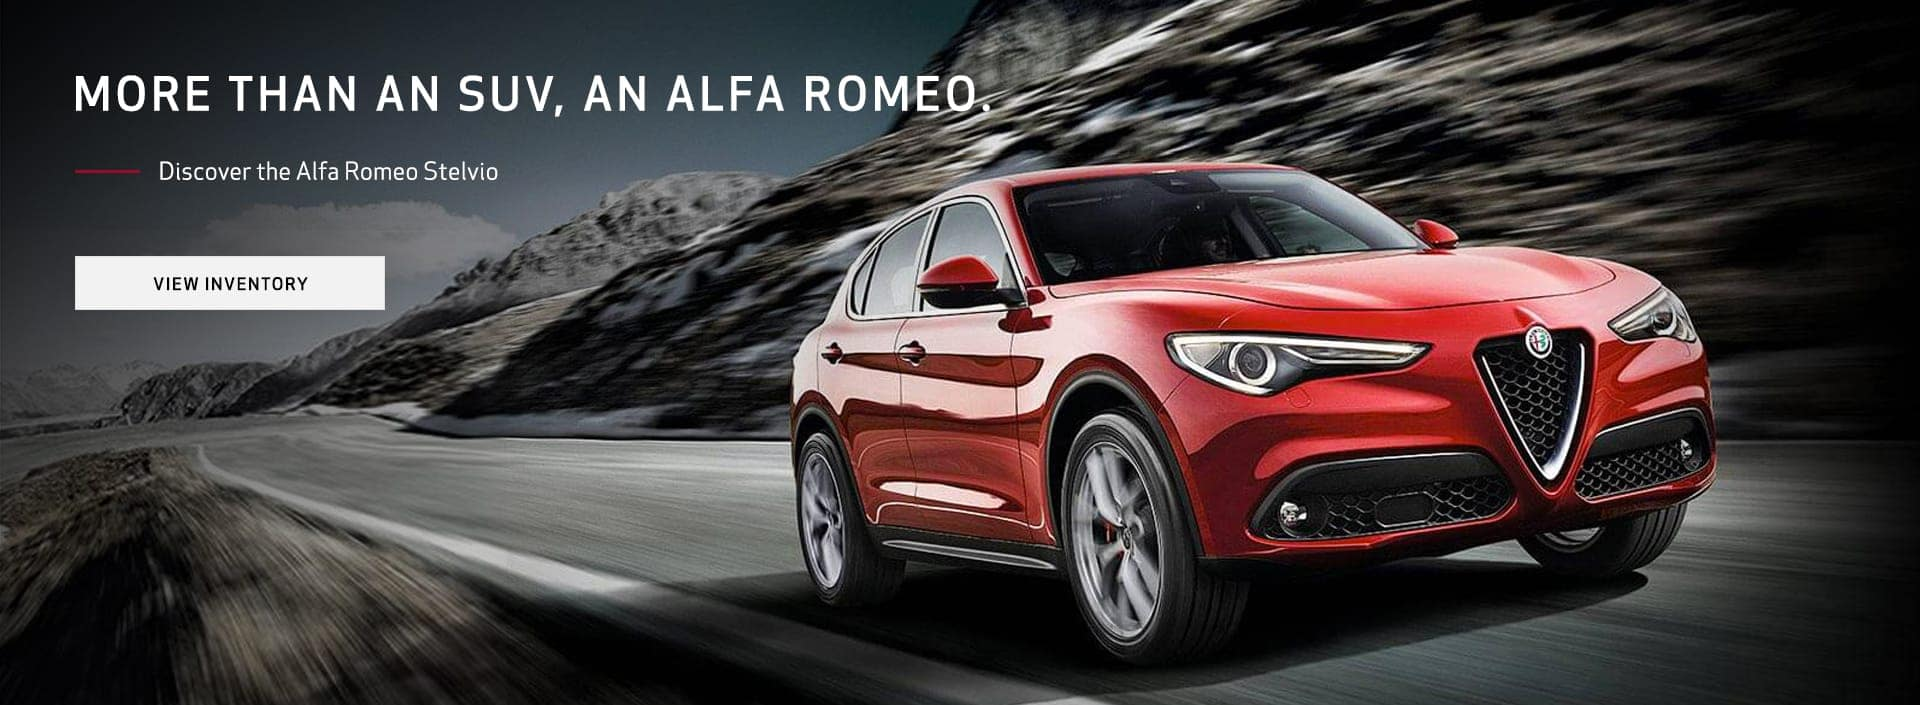 An Alfa Romeo Stelvio driving down a road with a blurred background of mountains.